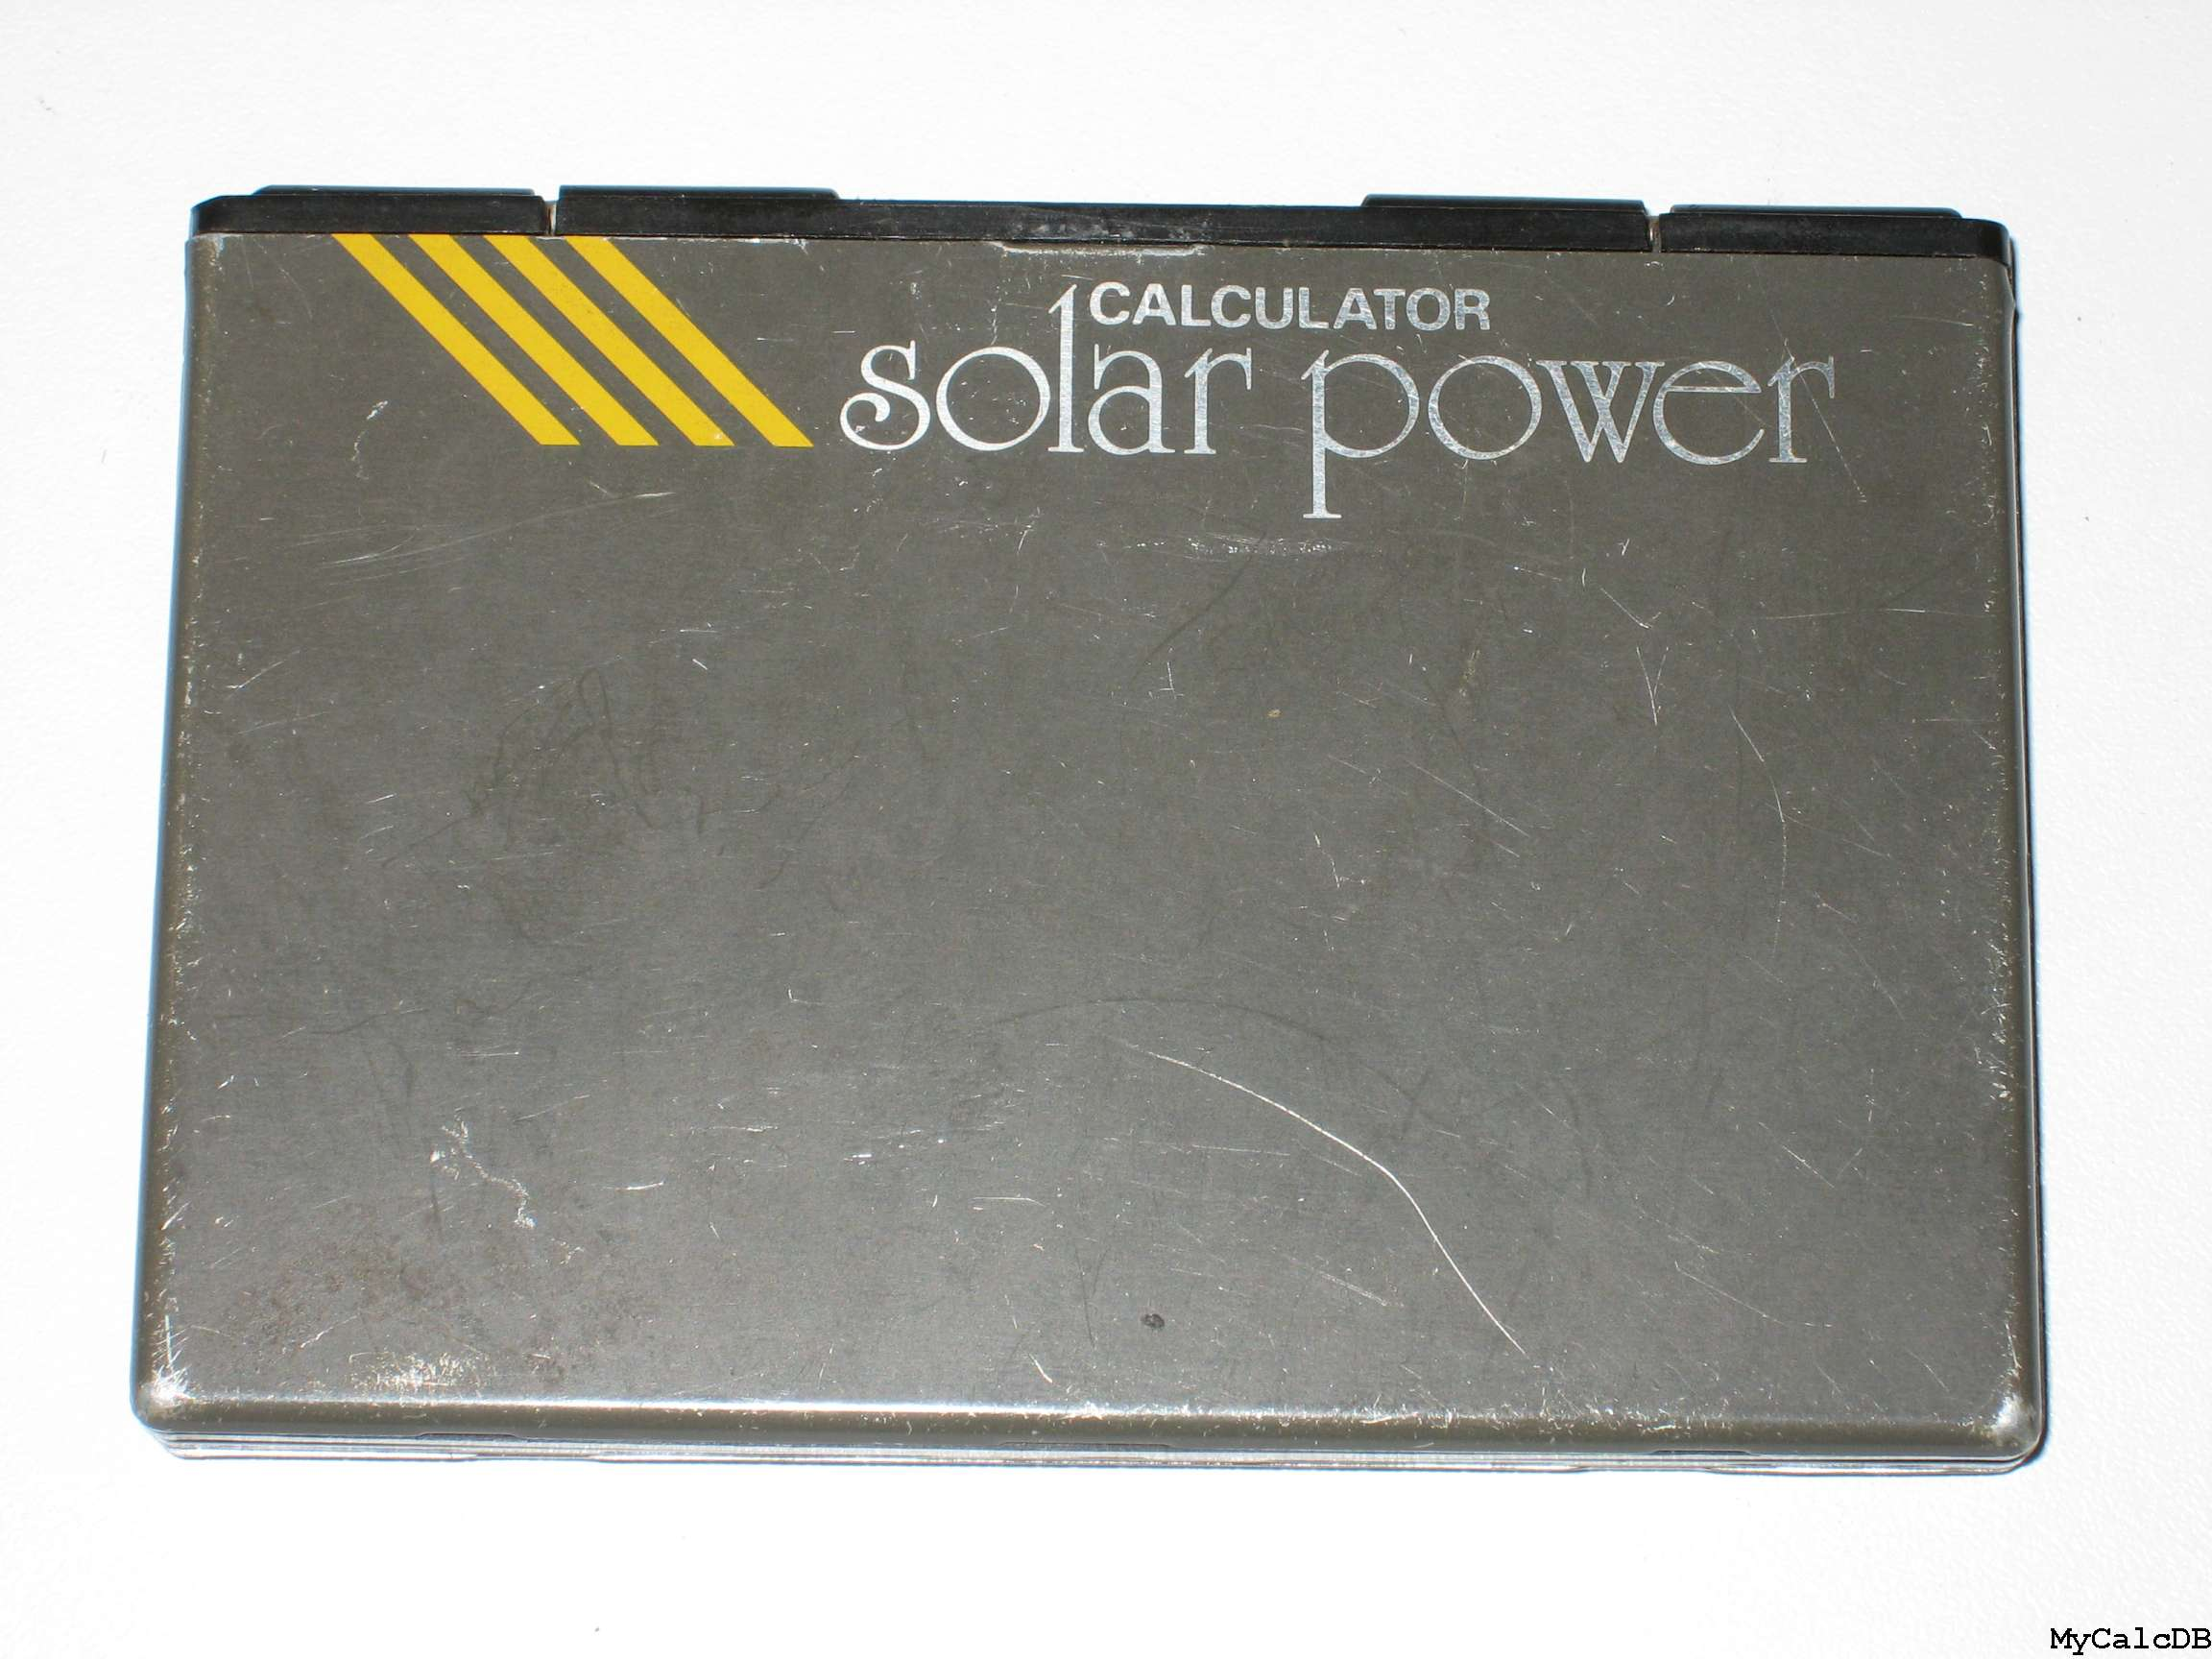 No Brand name solar power CALCULATOR